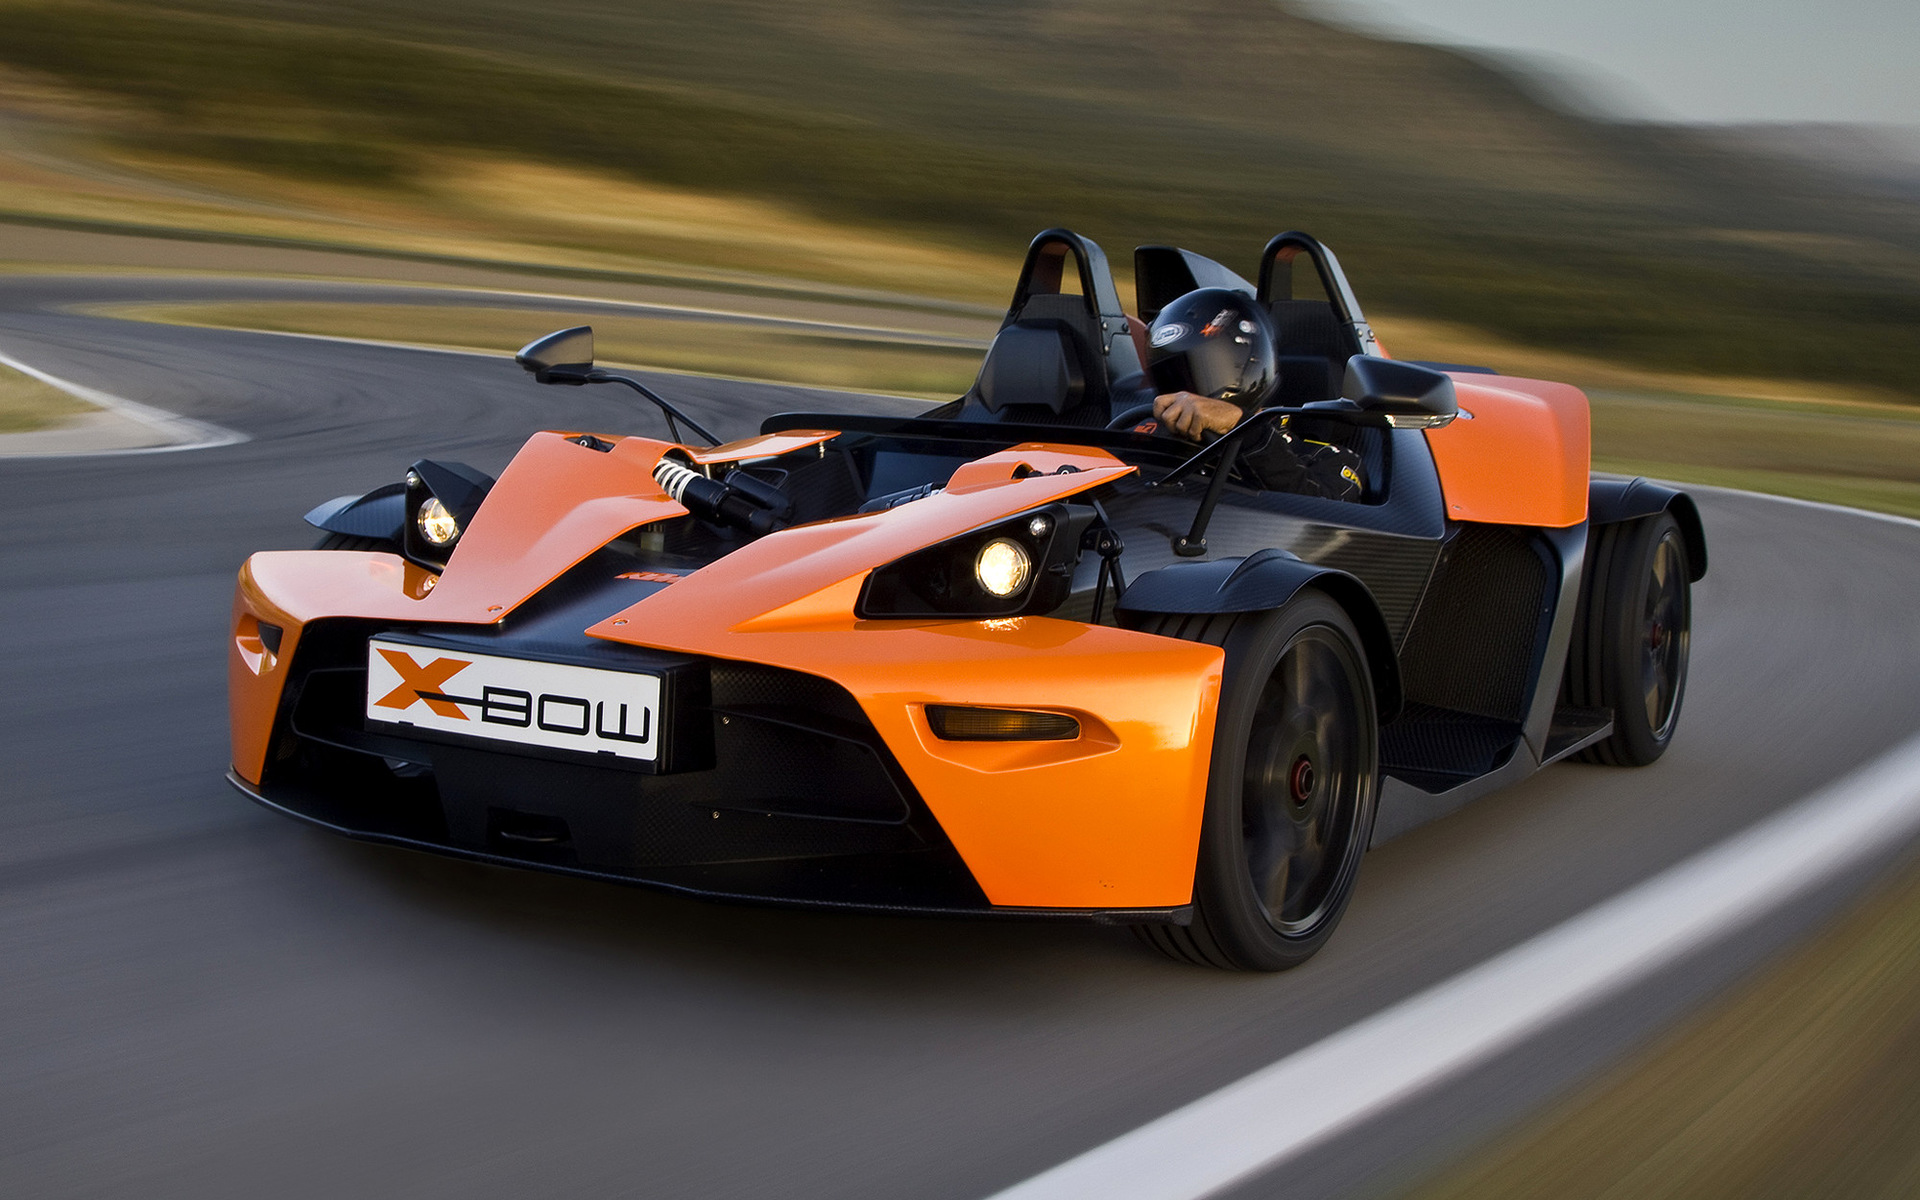 KTM X-Bow Street (2008) Wallpapers and HD Images - Car Pixel